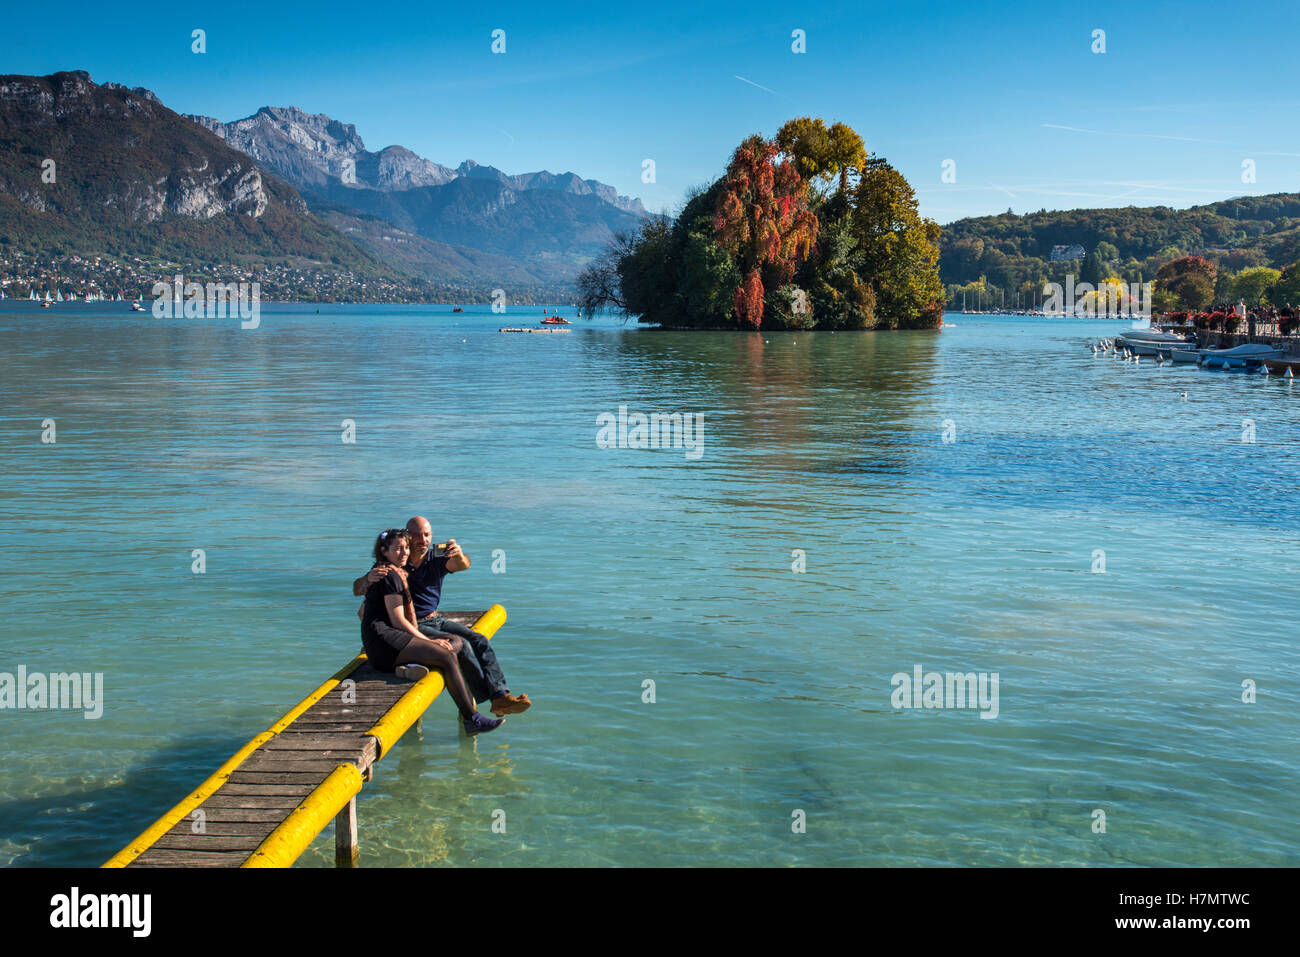 Couple sitting on a pontoon taking a selfie, Lake Annecy, Haute Savoie, France - Stock Image